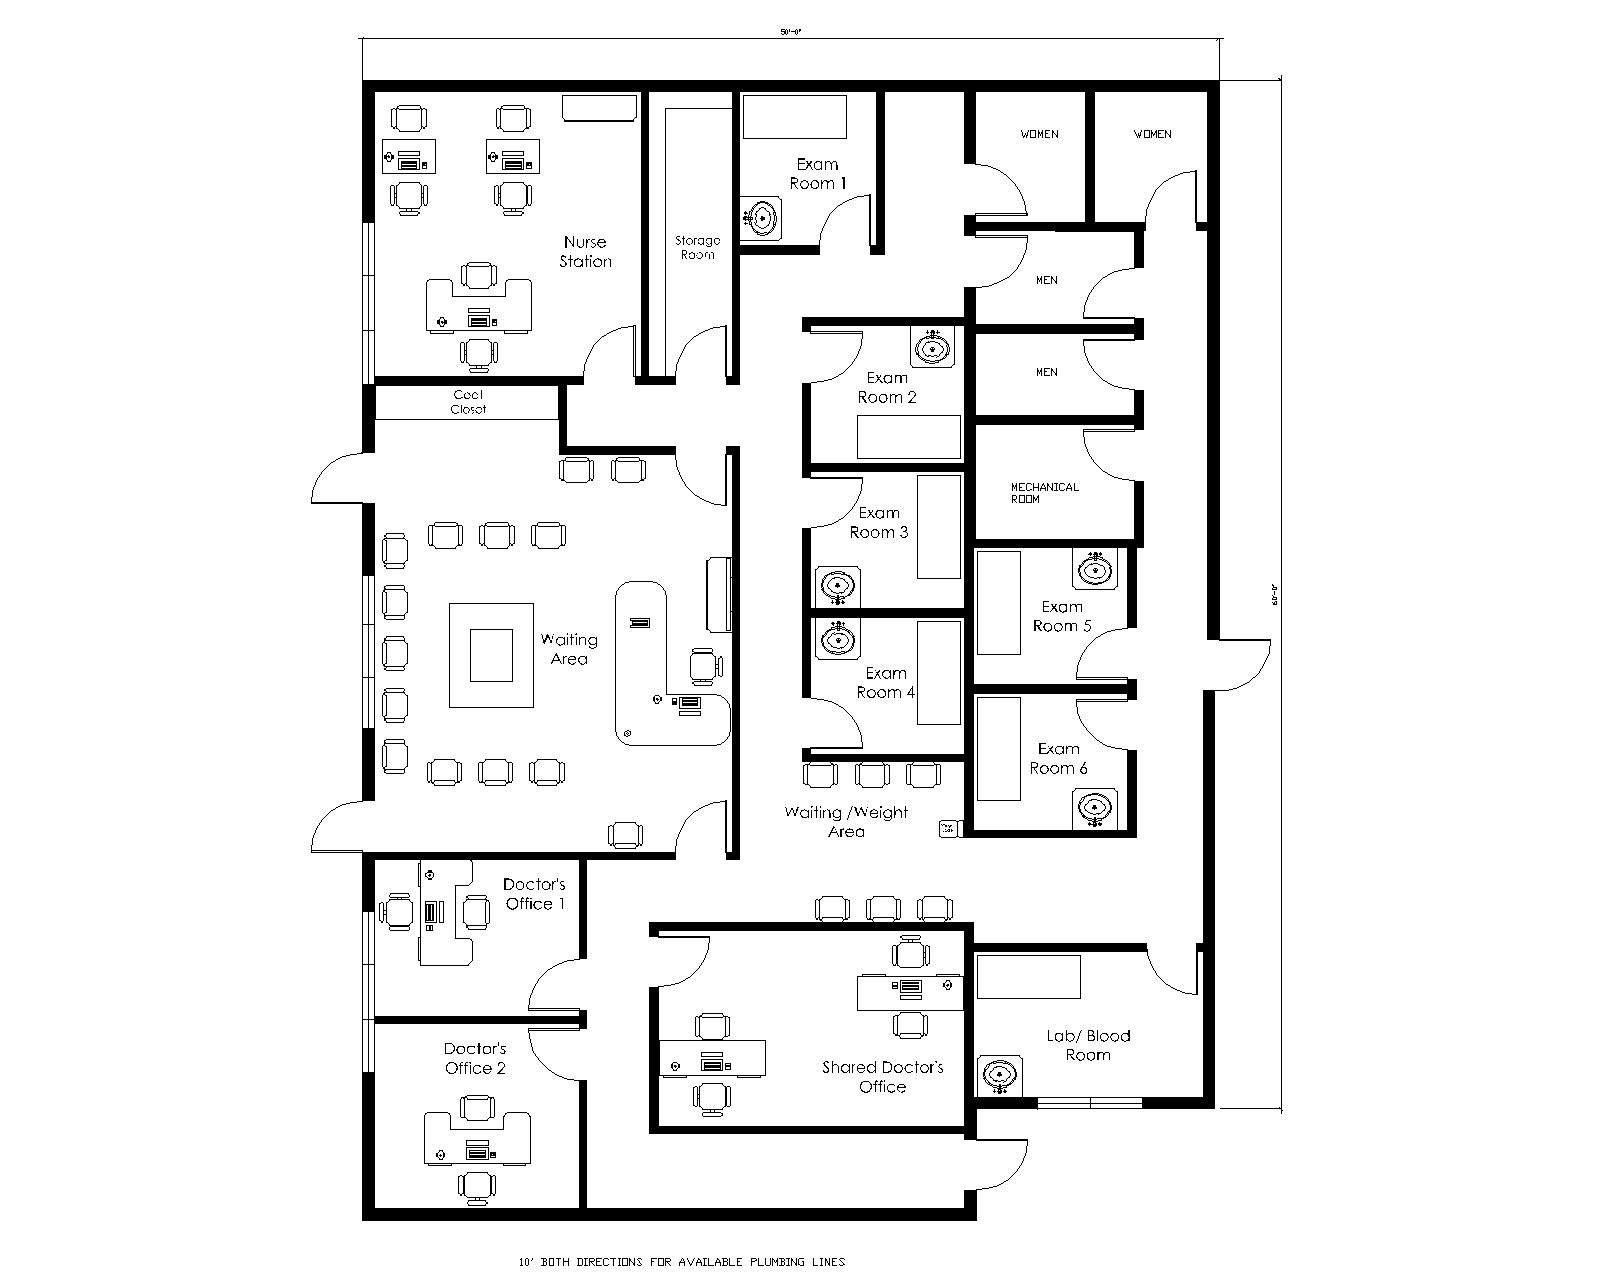 Medical Office Design Plans Doctors Office Layout Design Medical